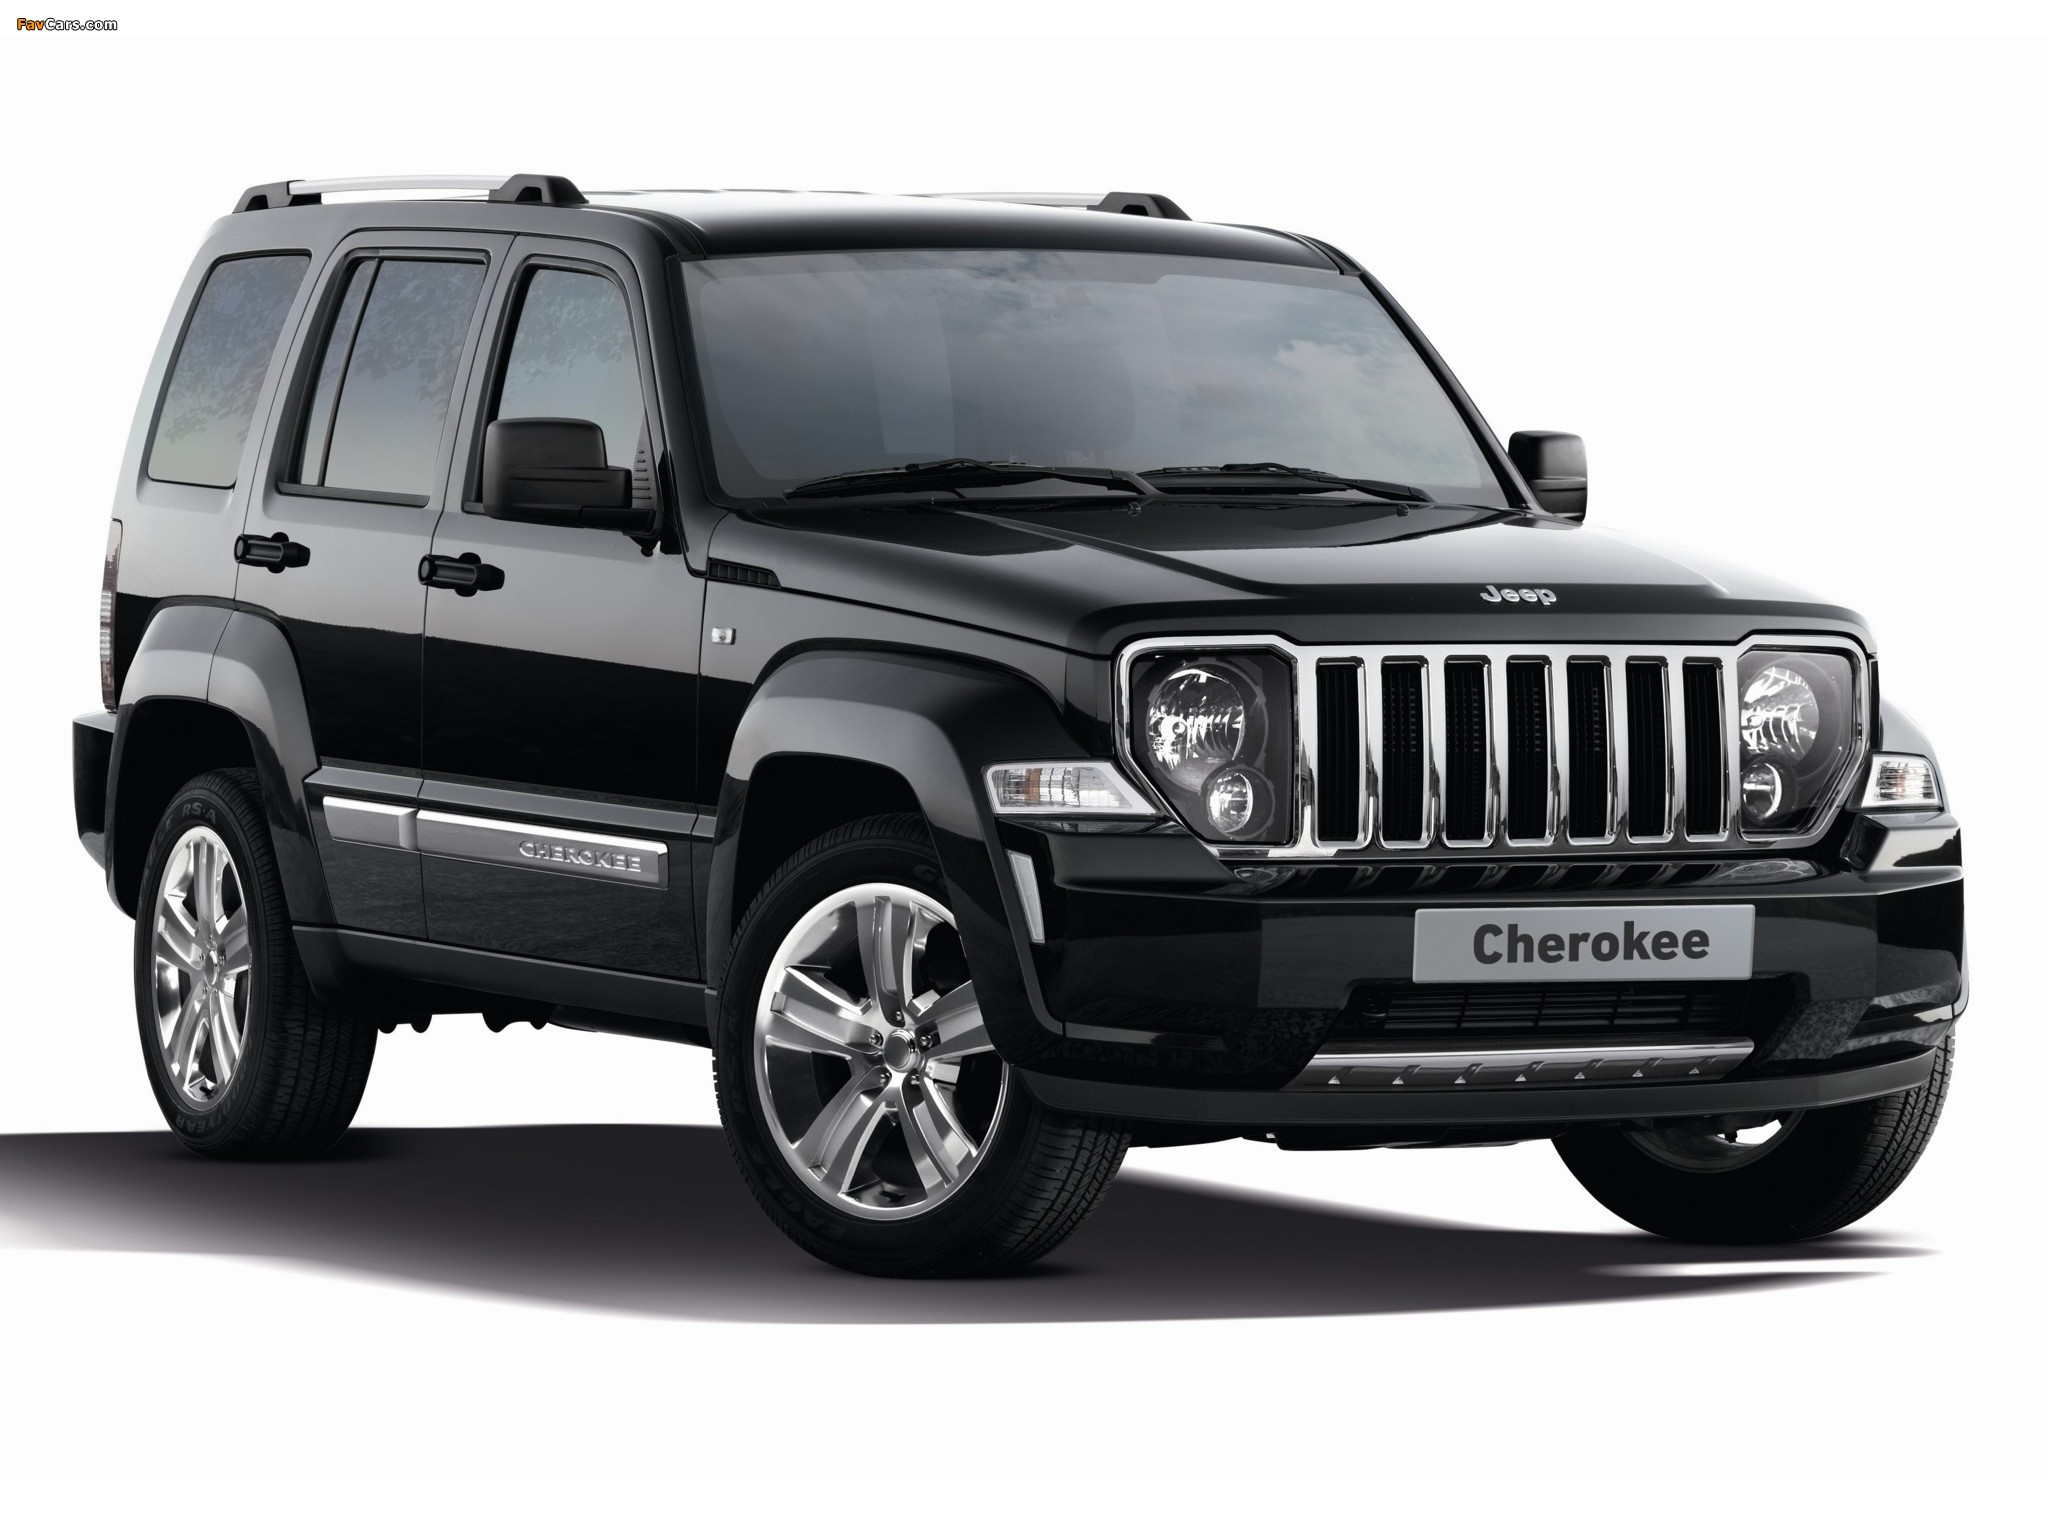 jeep cherokee overland kk 2012 wallpapers 2048x1536. Black Bedroom Furniture Sets. Home Design Ideas